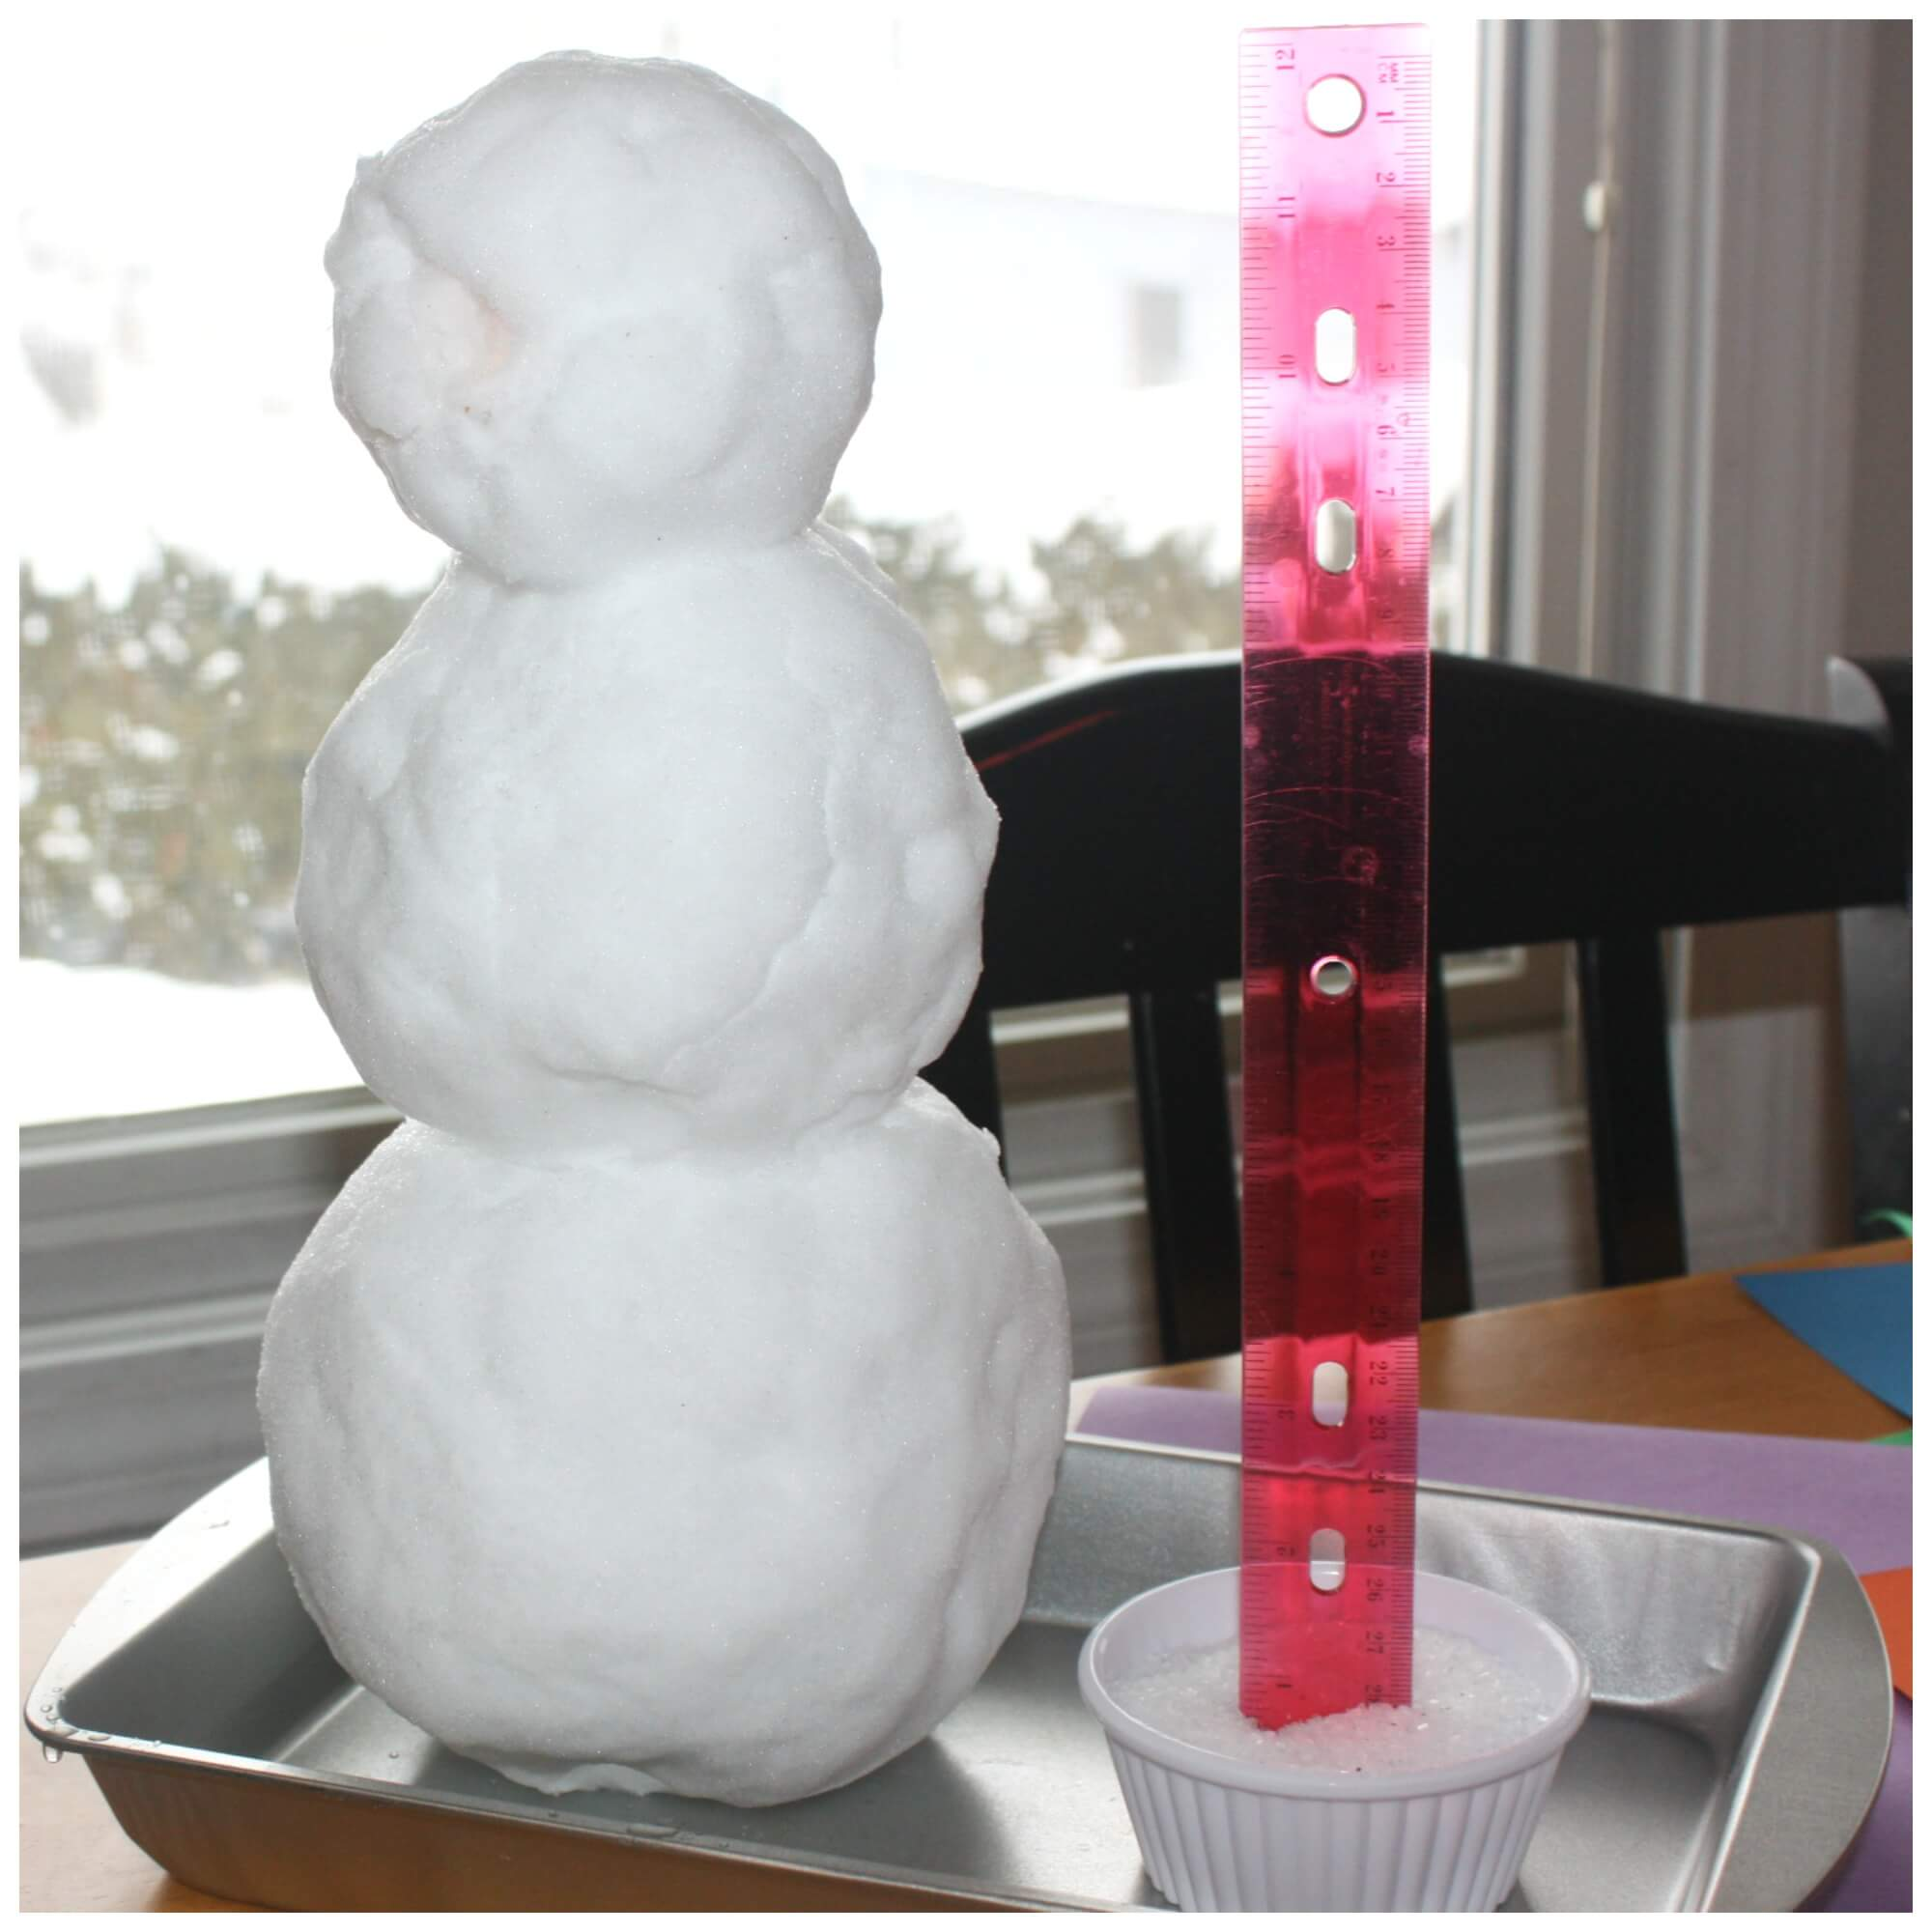 Snow Experiment Winter Melting Snowman Science